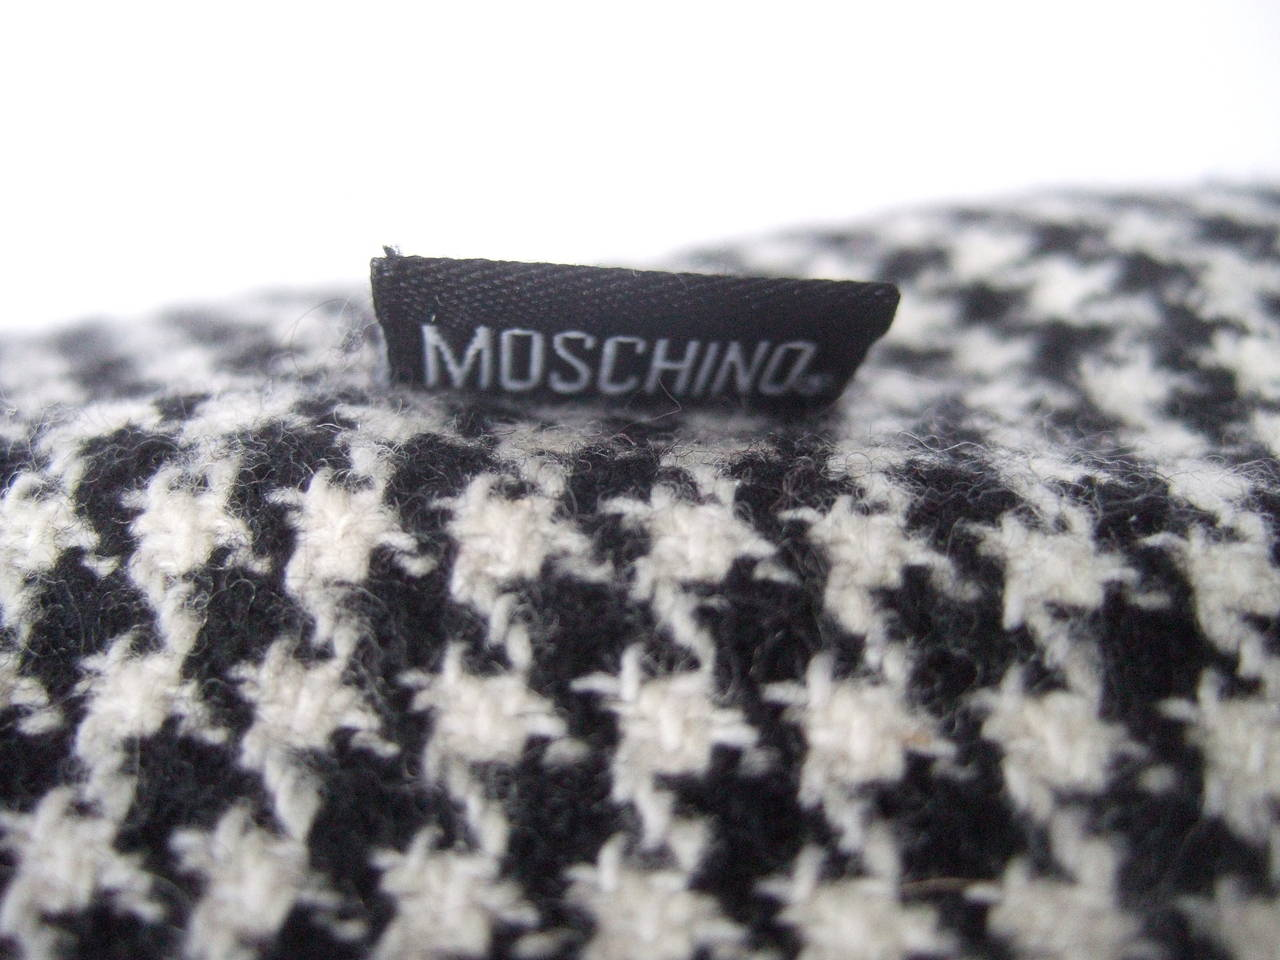 Moschino Mod Op Art Lolita Hounds Tooth Wool Skirt US Size 8 Made in Italy 8